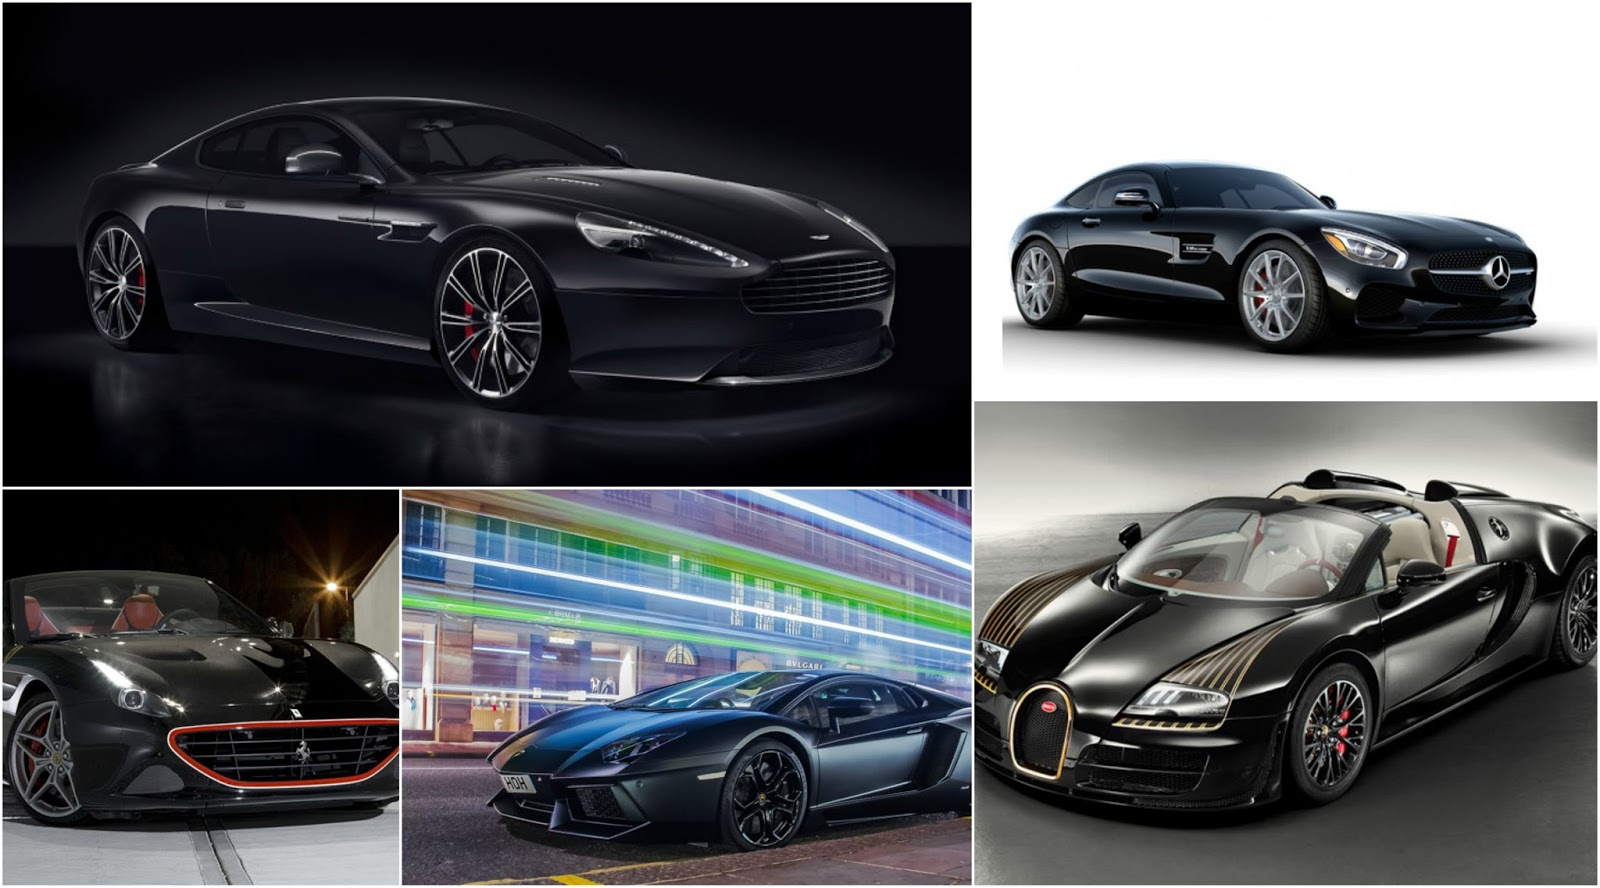 Black Luxury Vehicles: Passion For Luxury : 10 Luxury Cars In Black For A Night